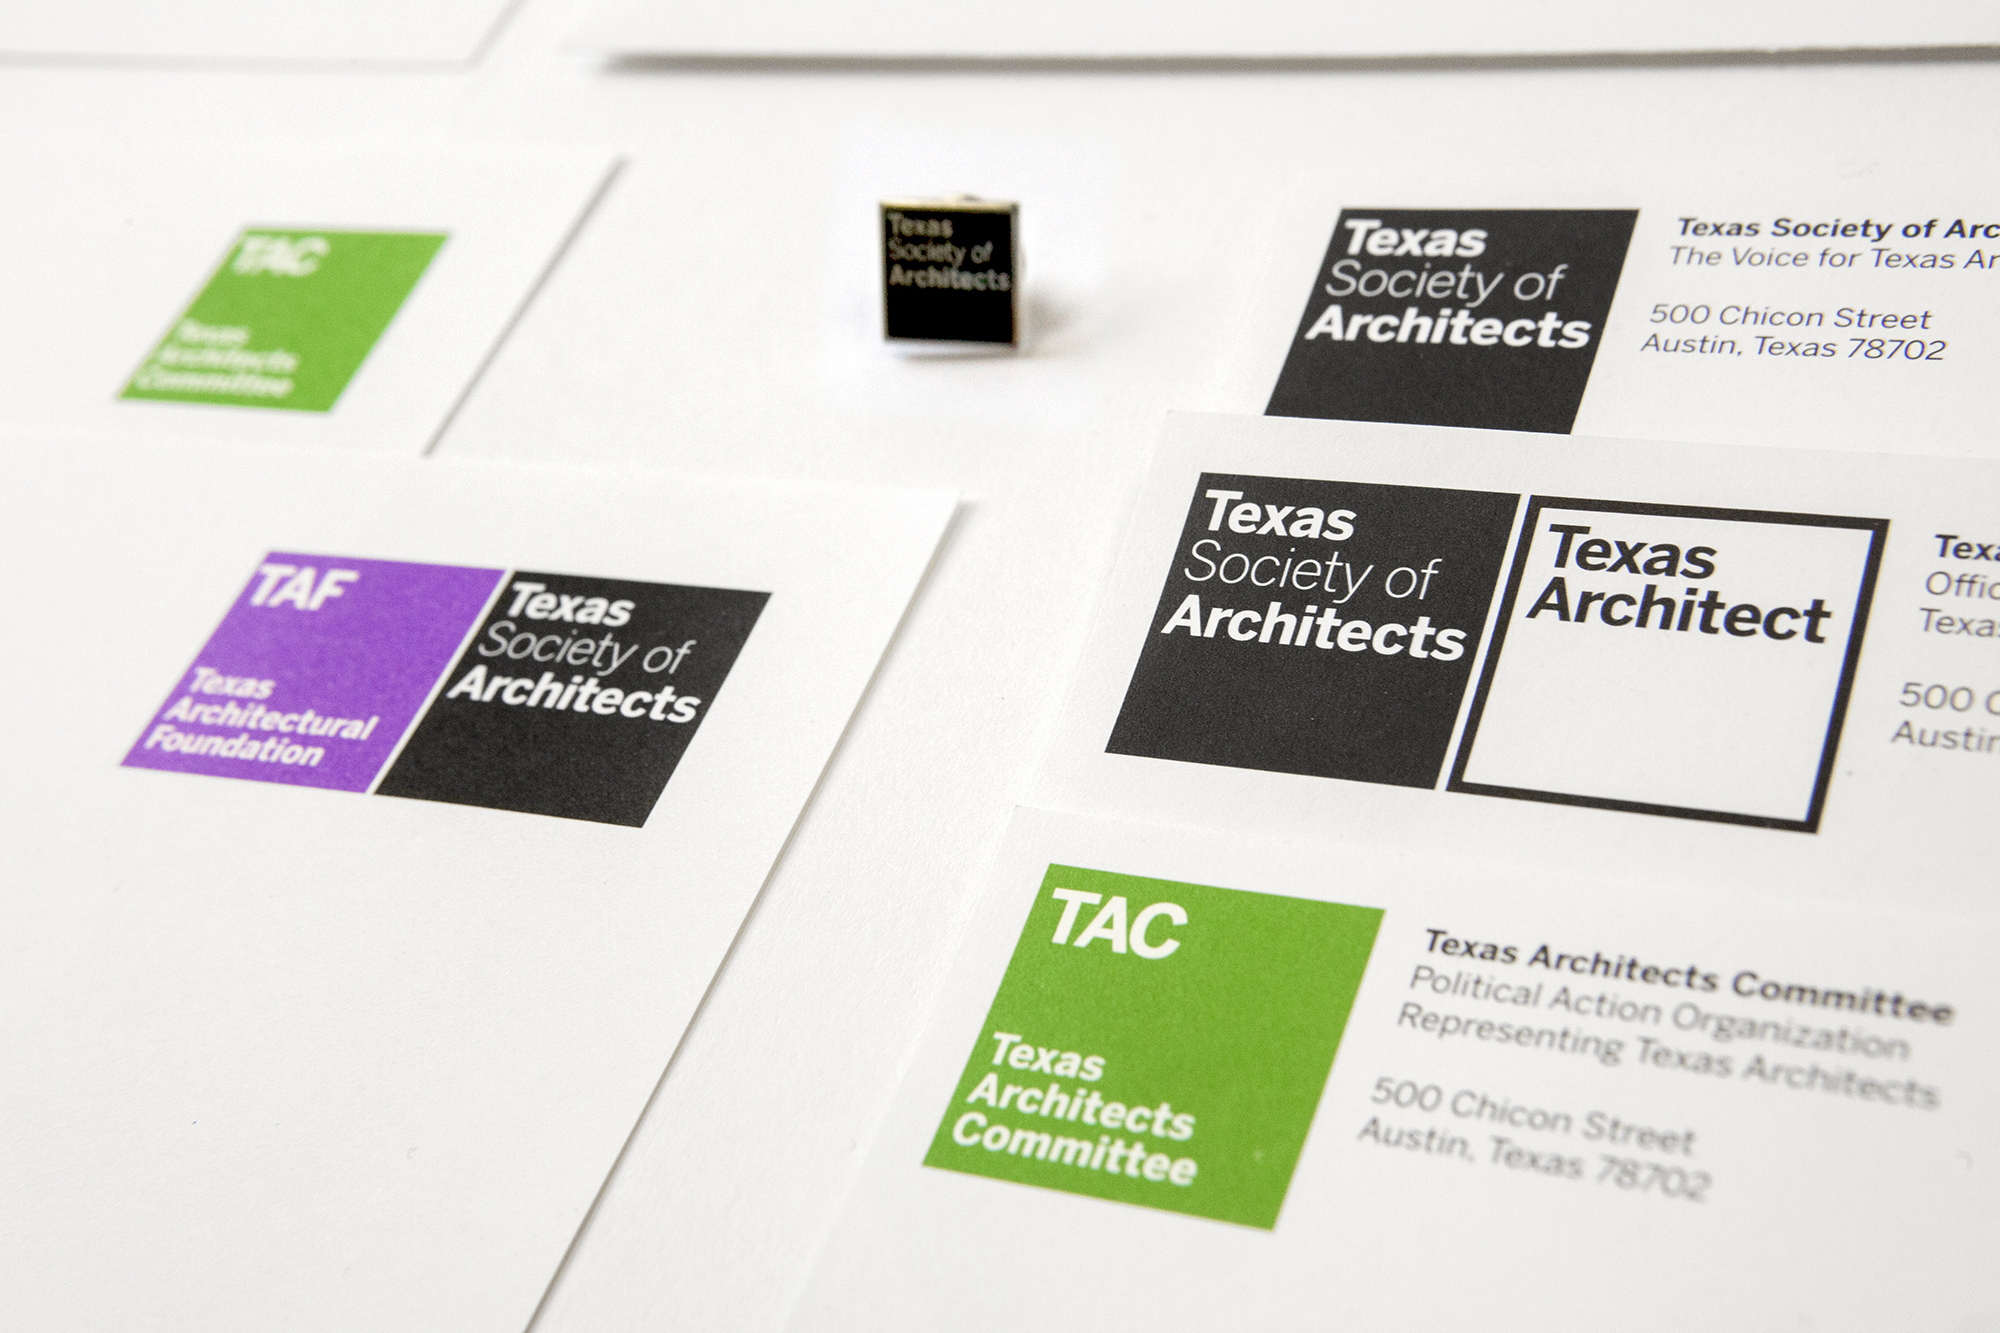 Texas Society of Architects